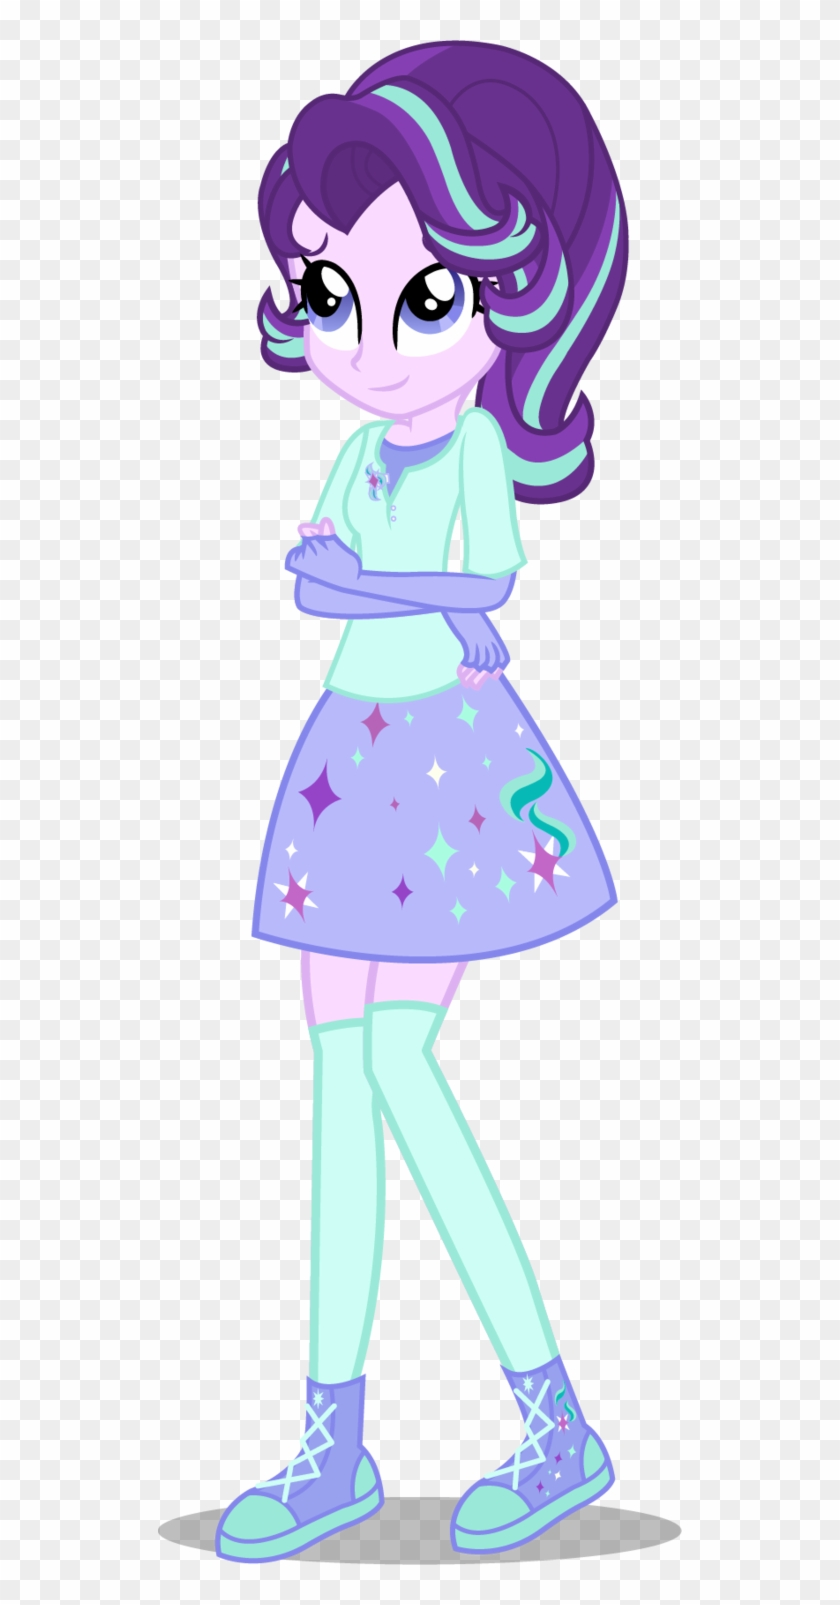 Twilight Sparkle My Little Pony Mlp Starlight Glimmer Equestria Girls Free Transparent Png Clipart Images Download